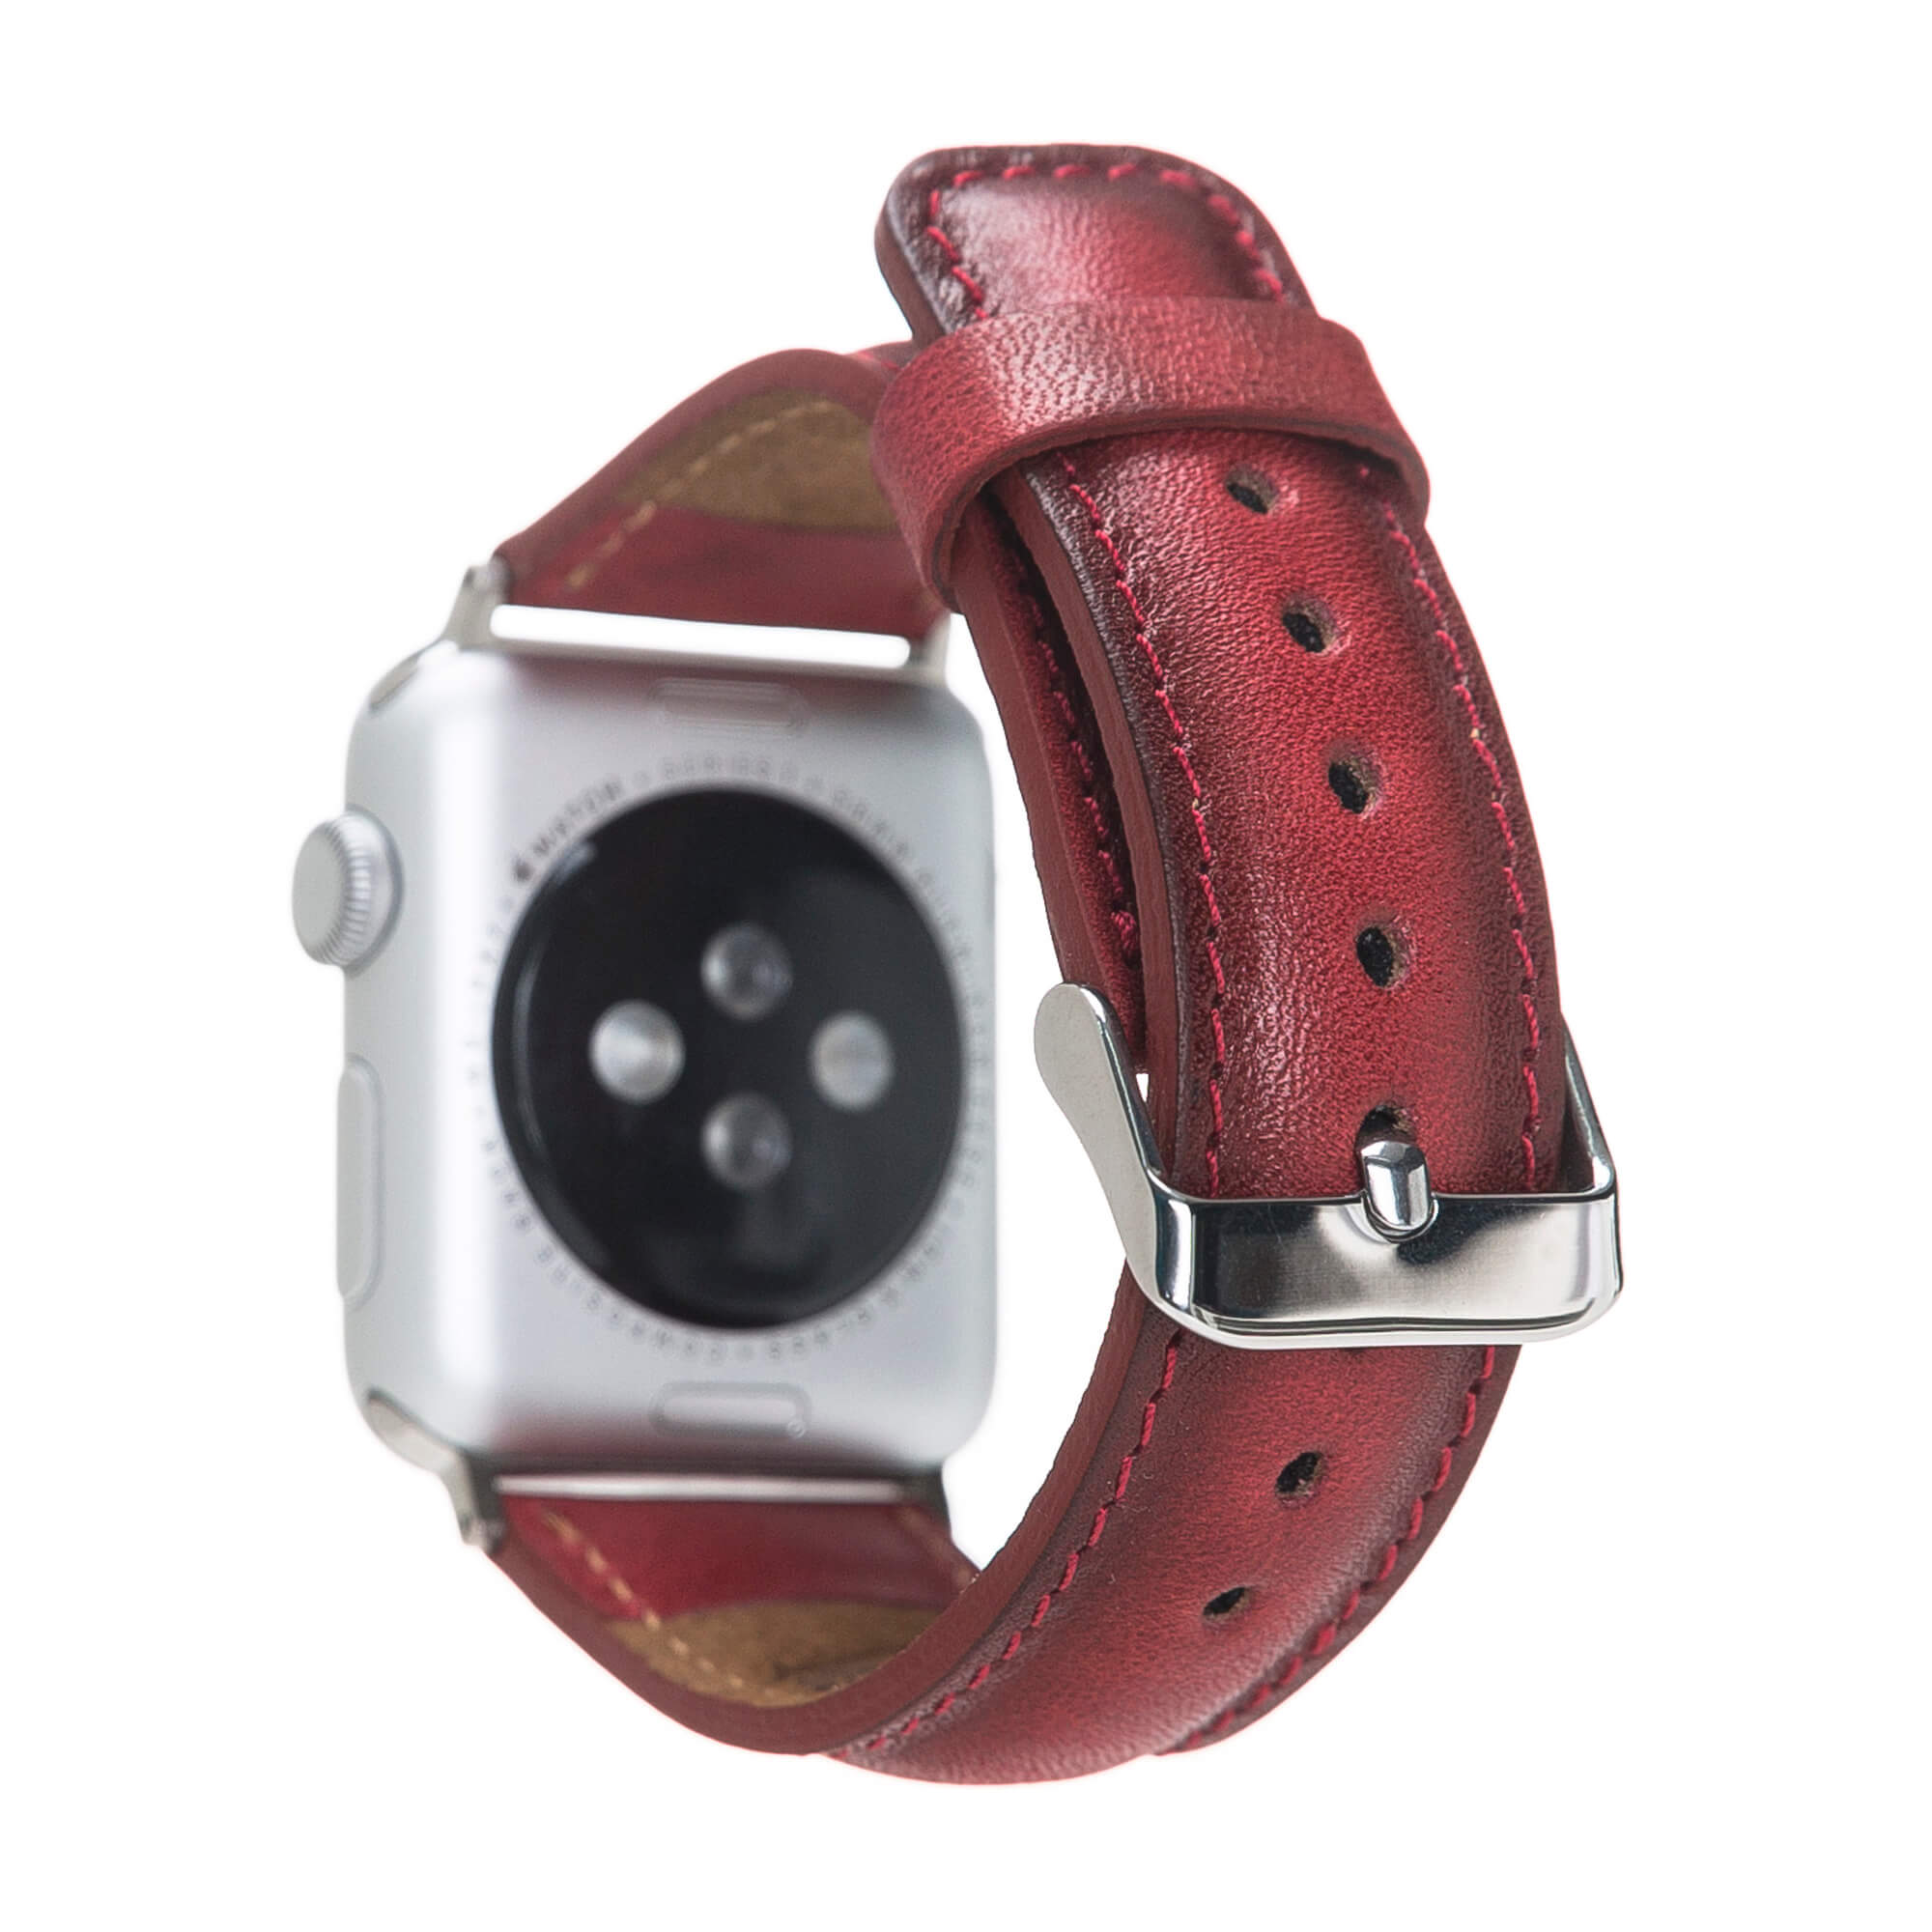 Solo Pelle Lederarmband für das Apple Watch Series 1-6 + SE I Rot Burned 42mm/44mm mit silbernen Connectoren